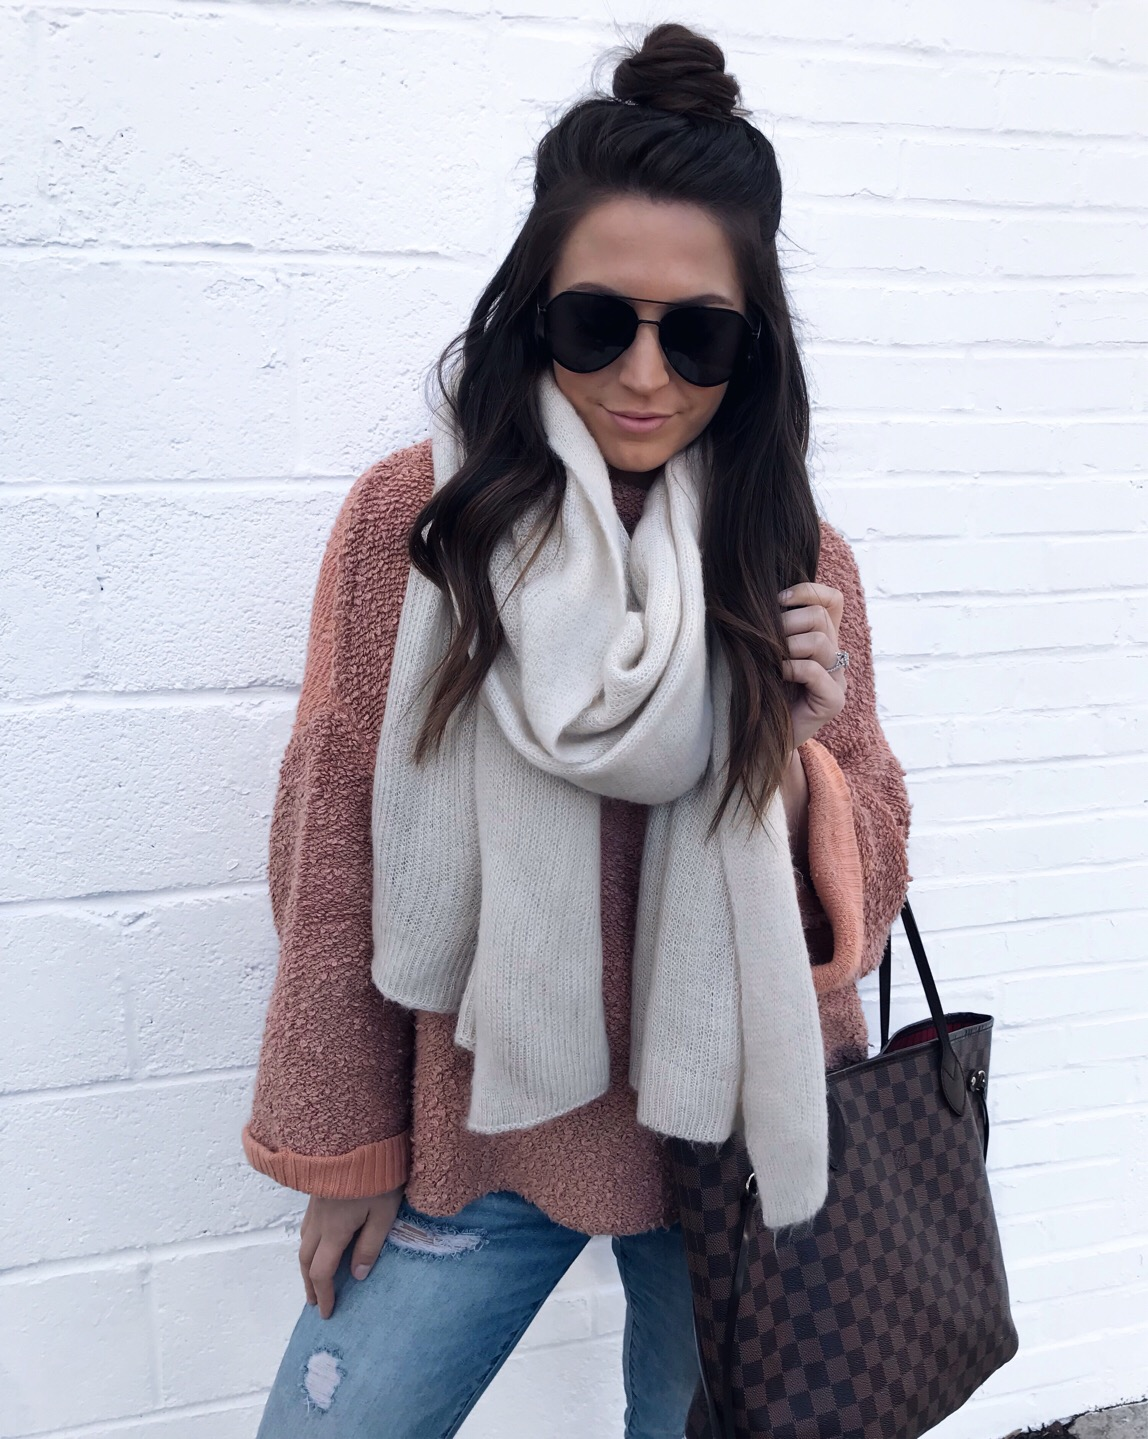 Weekend Sales & Instagram Round Up | Pine Barren Beauty | winter fashion, winter outfit idea, free people scarf, half up top knot, cozy outfit idea